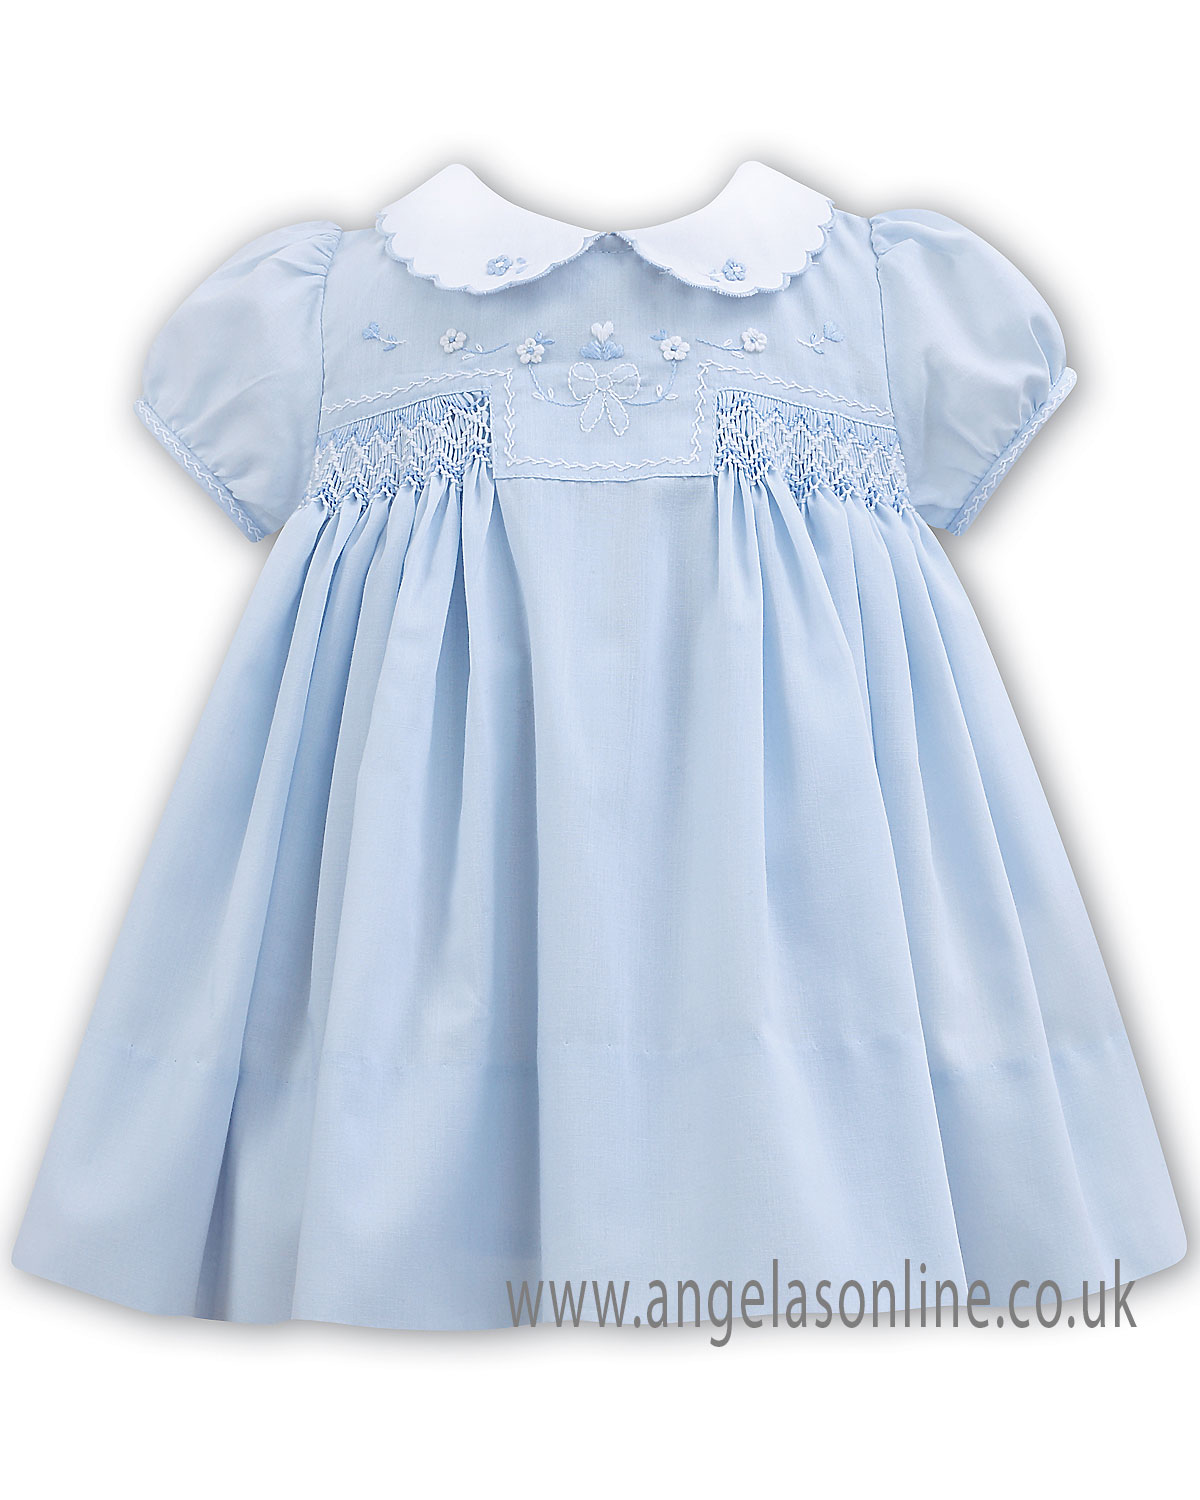 06892959 Hand smocked traditional Sarah Louise baby girls dress 011061 Blue